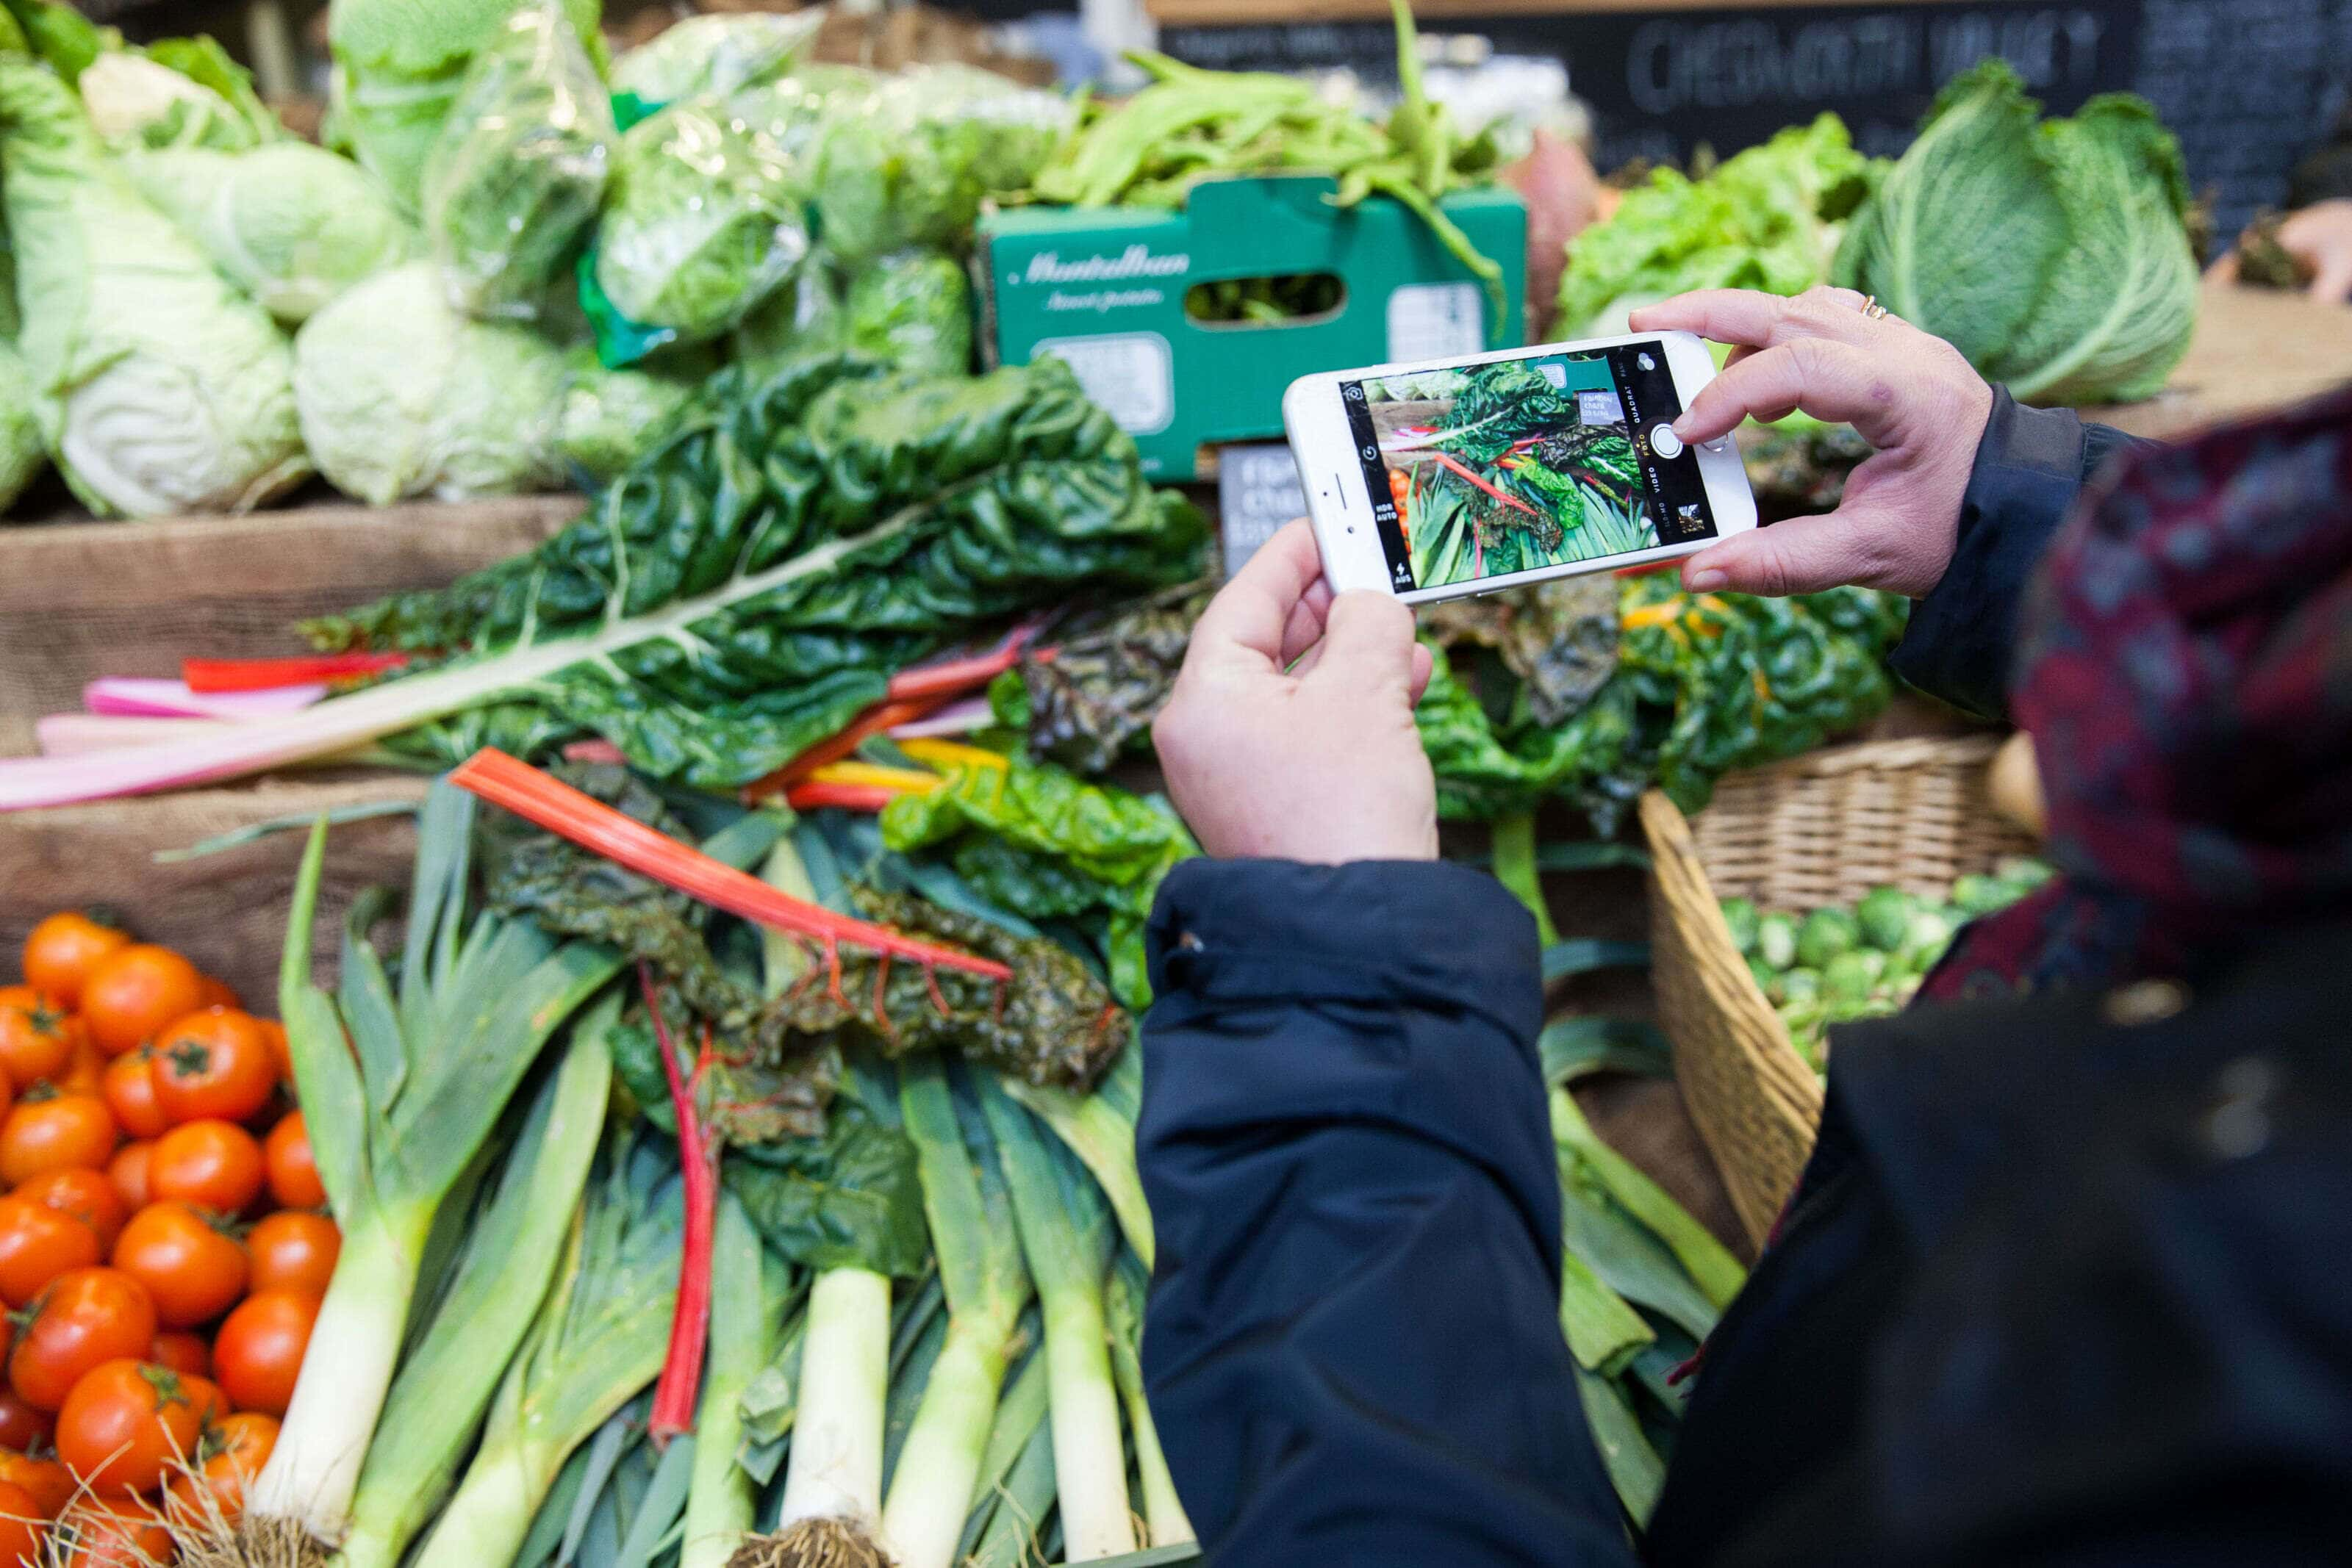 image of an iphone screen taking an image of veg and fruit.